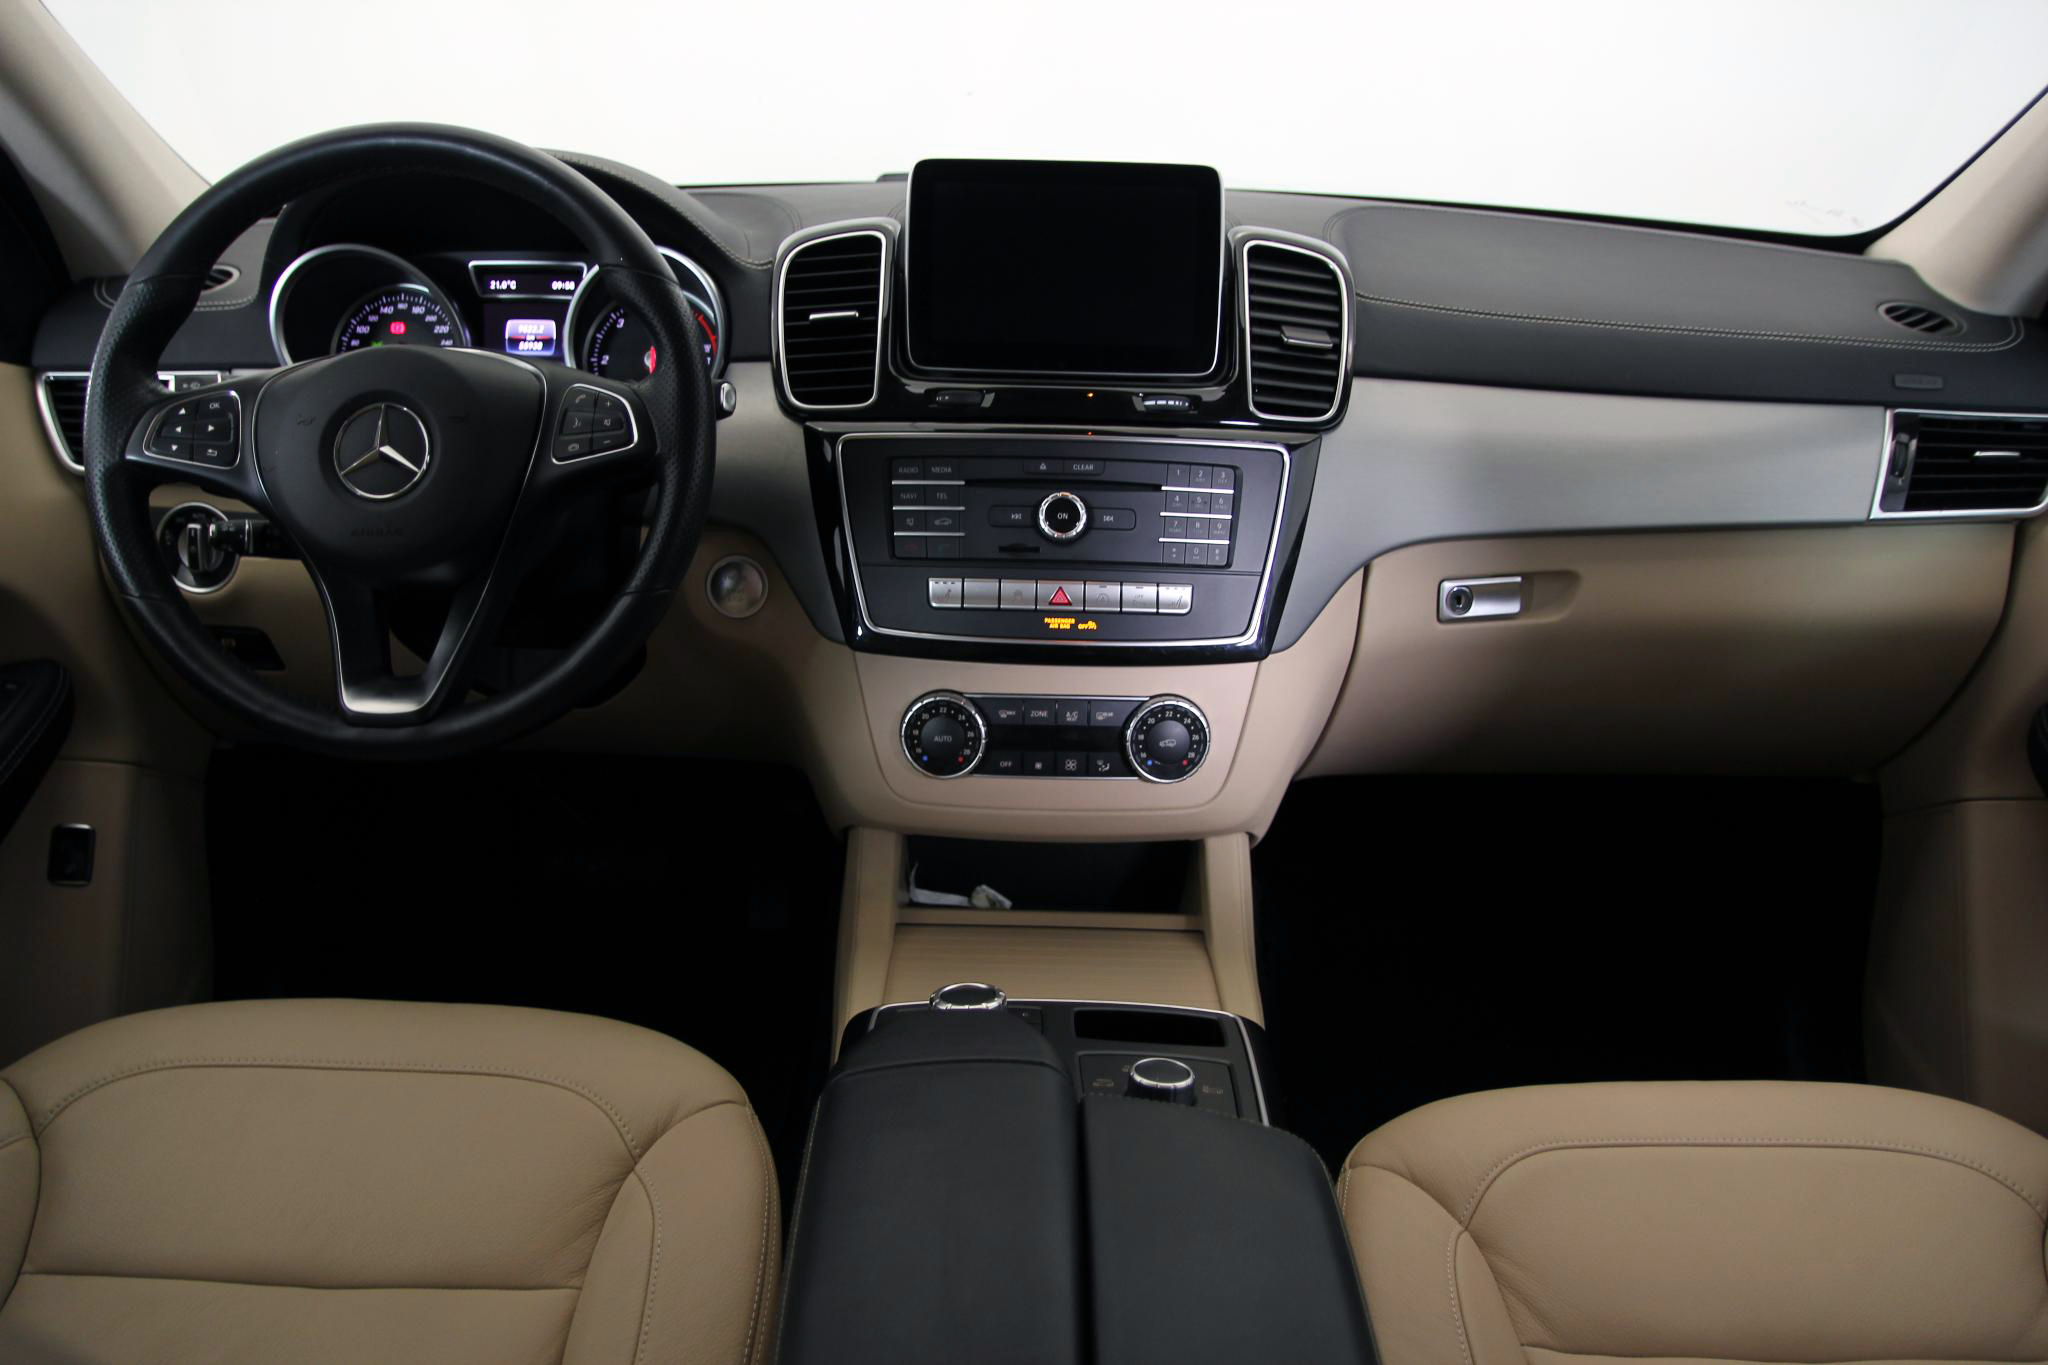 Mercedes-Benz Clase GLE GLE COUPE 350 D 4MATIC imagen 10